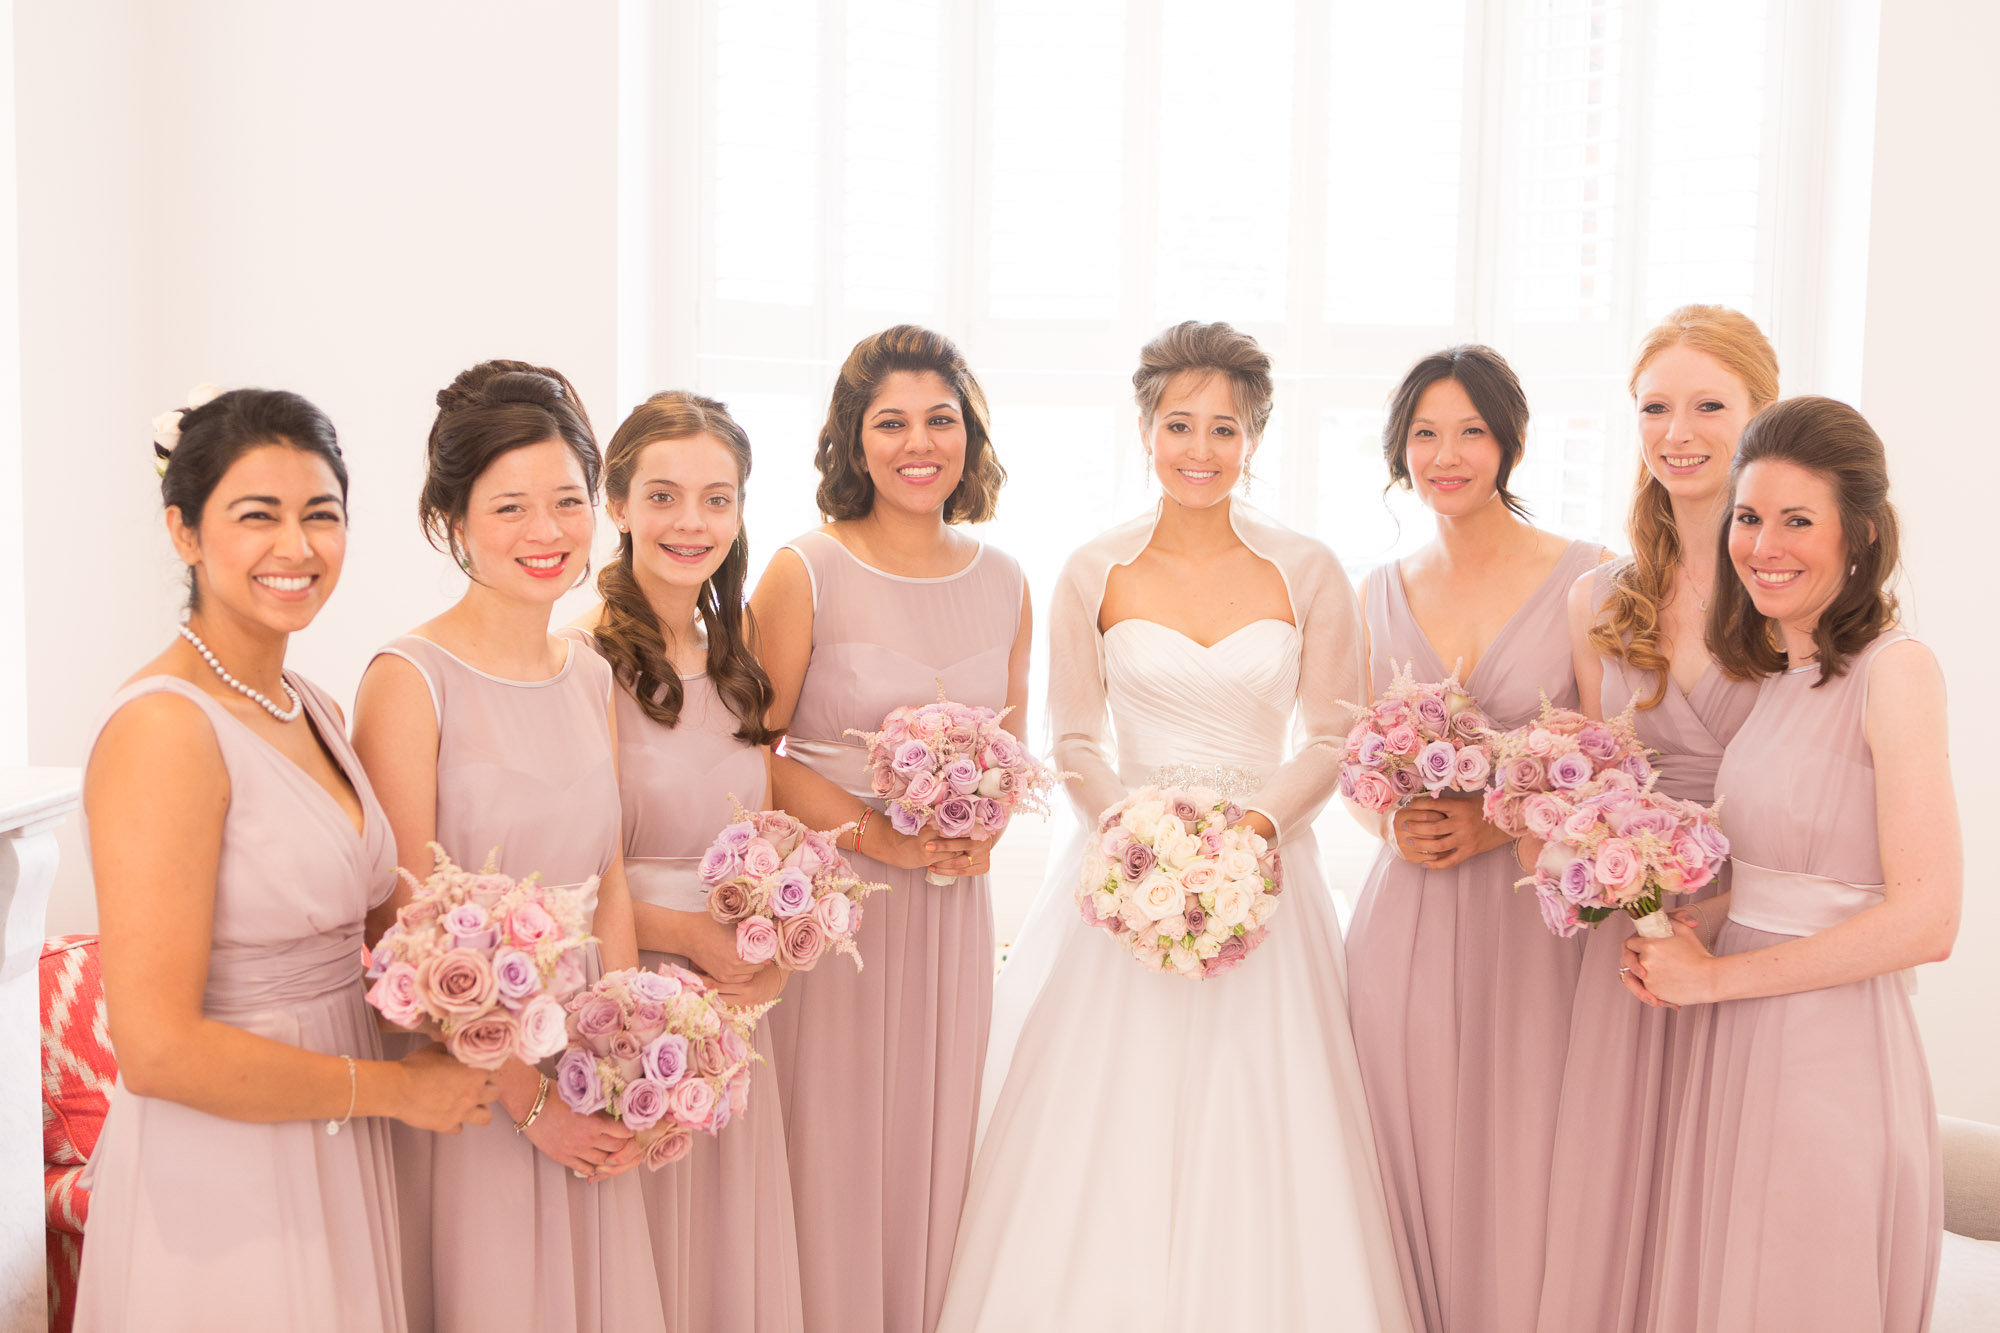 wedding day schedule. Bridal makeup and hair for a bride and bridesmaids. Plus bridal hairstyles for brides with long hair by wedding makeup artist and bridal hair stylist Pam Wrigley in London